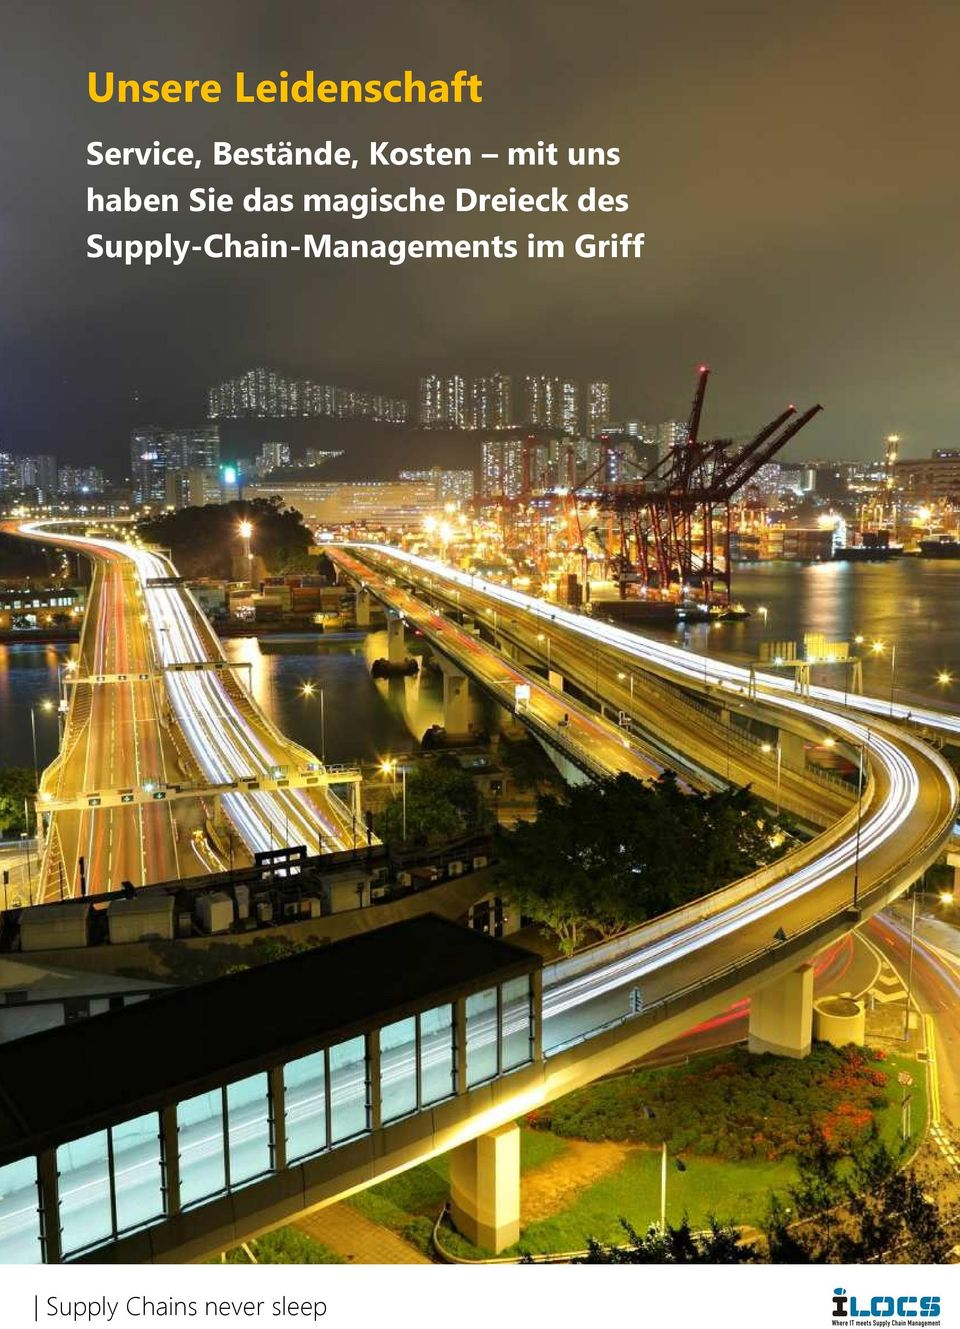 Dreieck des Supply-Chain-Managements